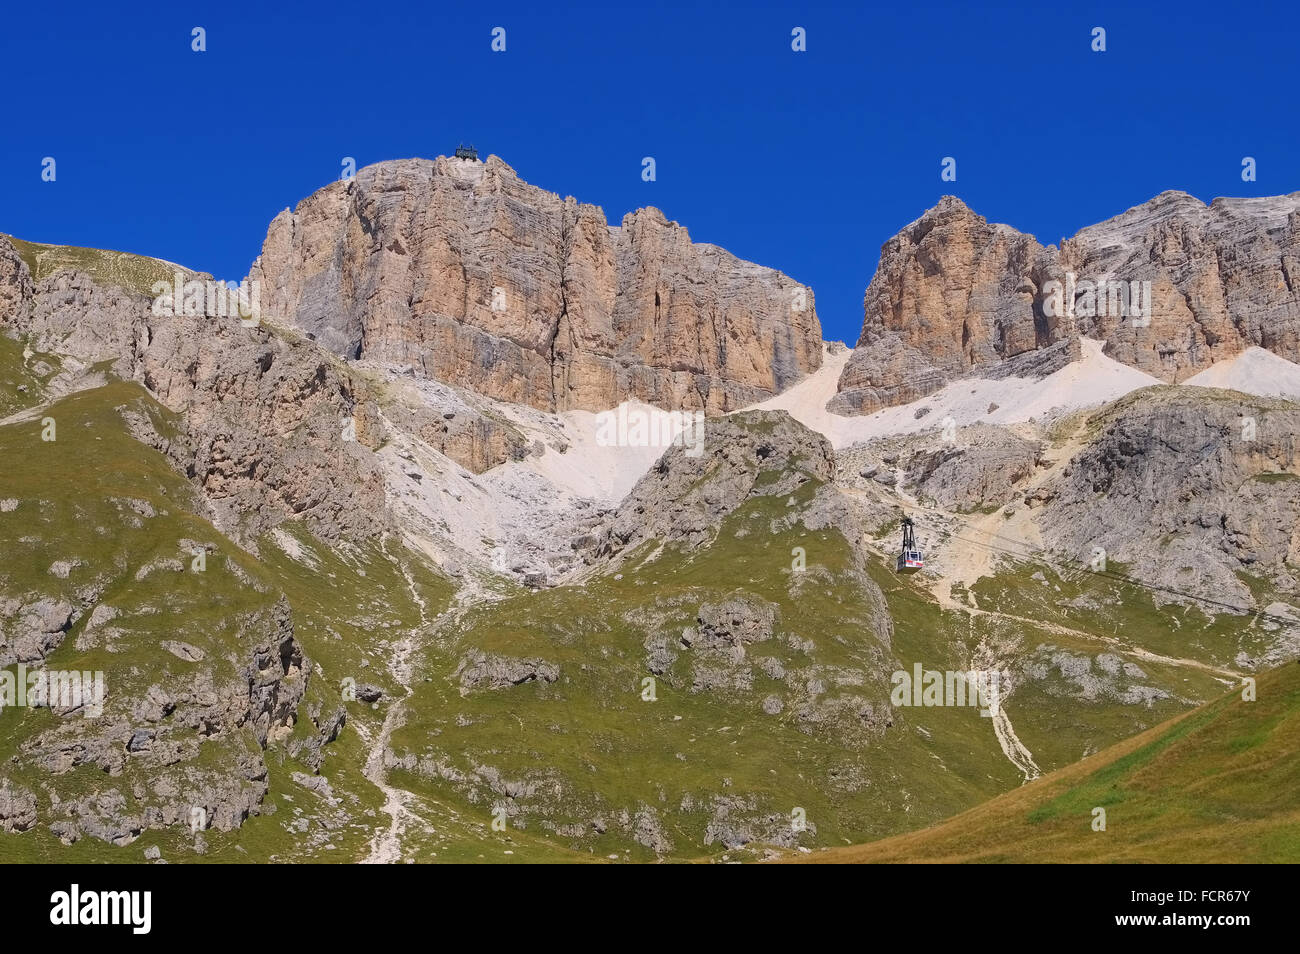 Sella Gruppe in den Dolomiten Seilbahn - Sella group in Dolomites, the ropeway Stock Photo